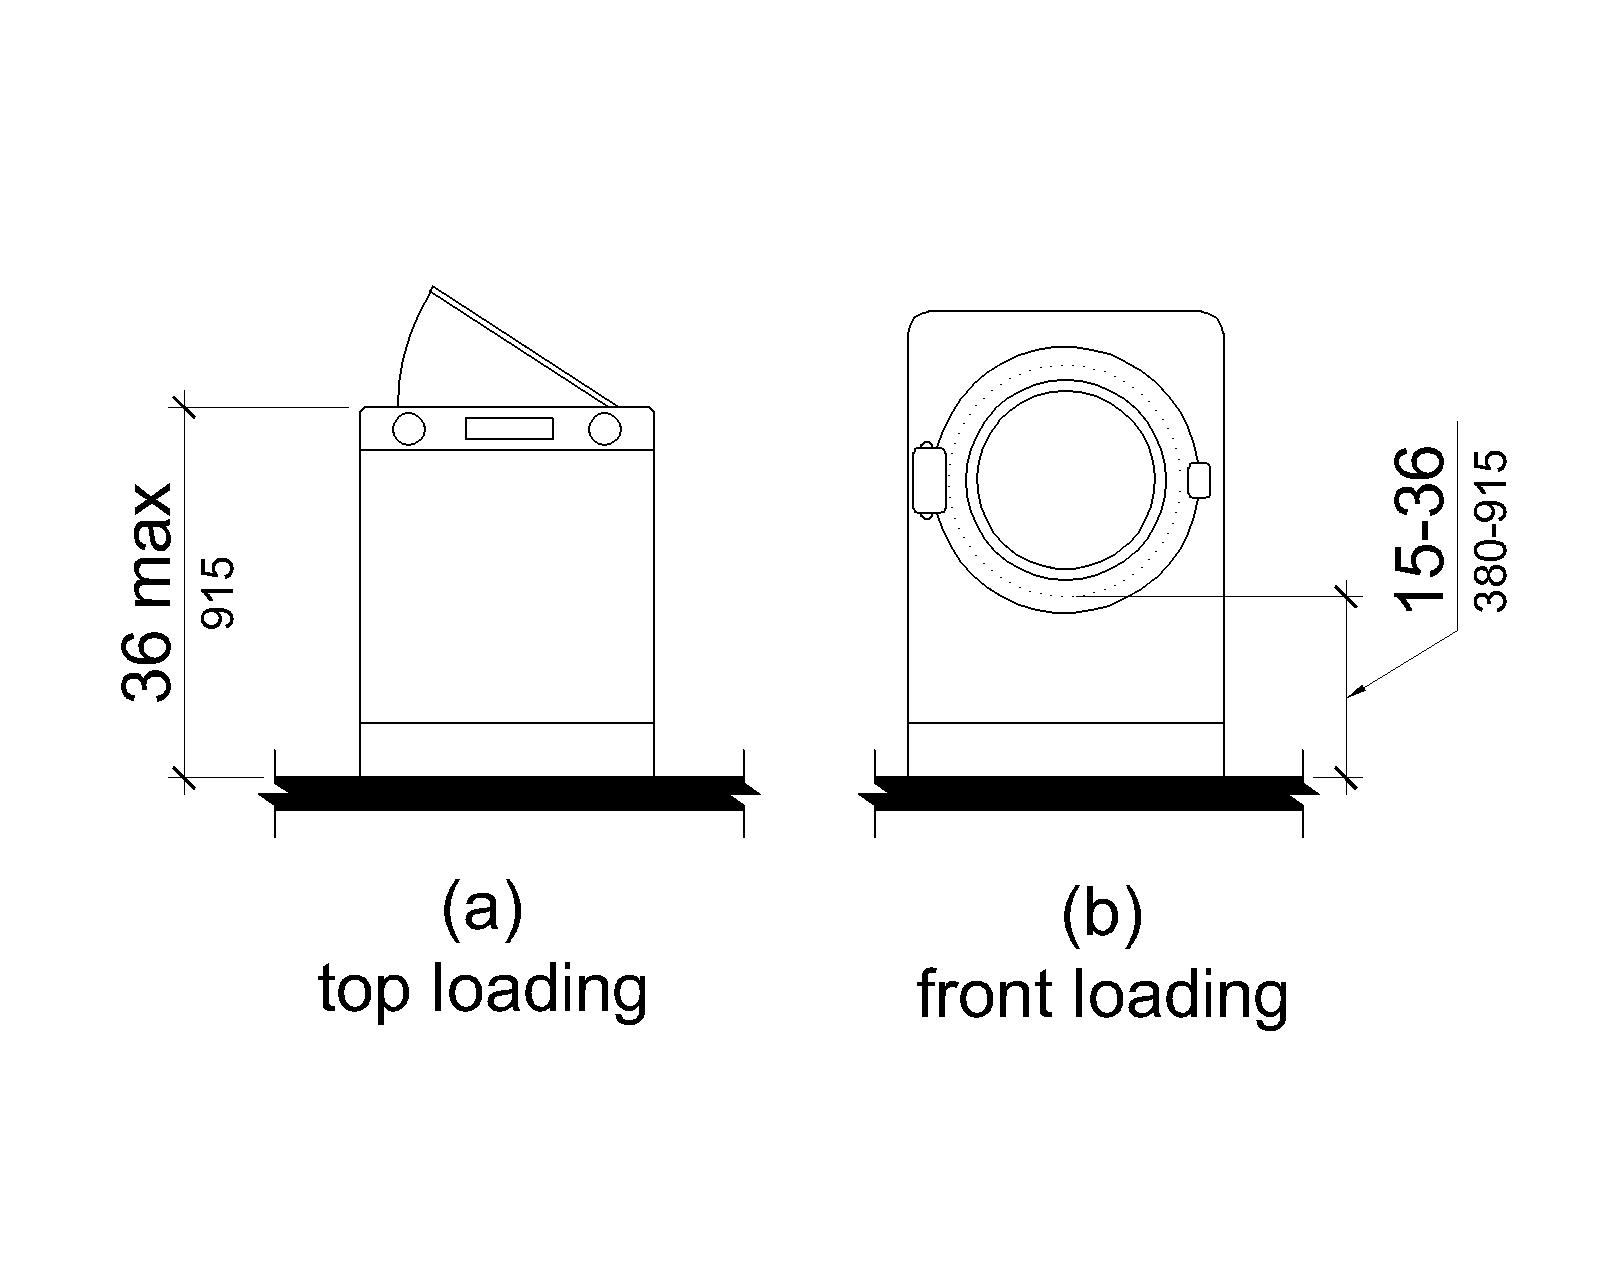 Figure (a) shows a top loading machine with the door to the laundry compartment 36 inches (915 mm) maximum above the deck surface. Figure (b) shows a front loading machine with the bottom of the opening to the laundry compartment 15 to 36 inches (380 to 915 mm) above the deck surface.